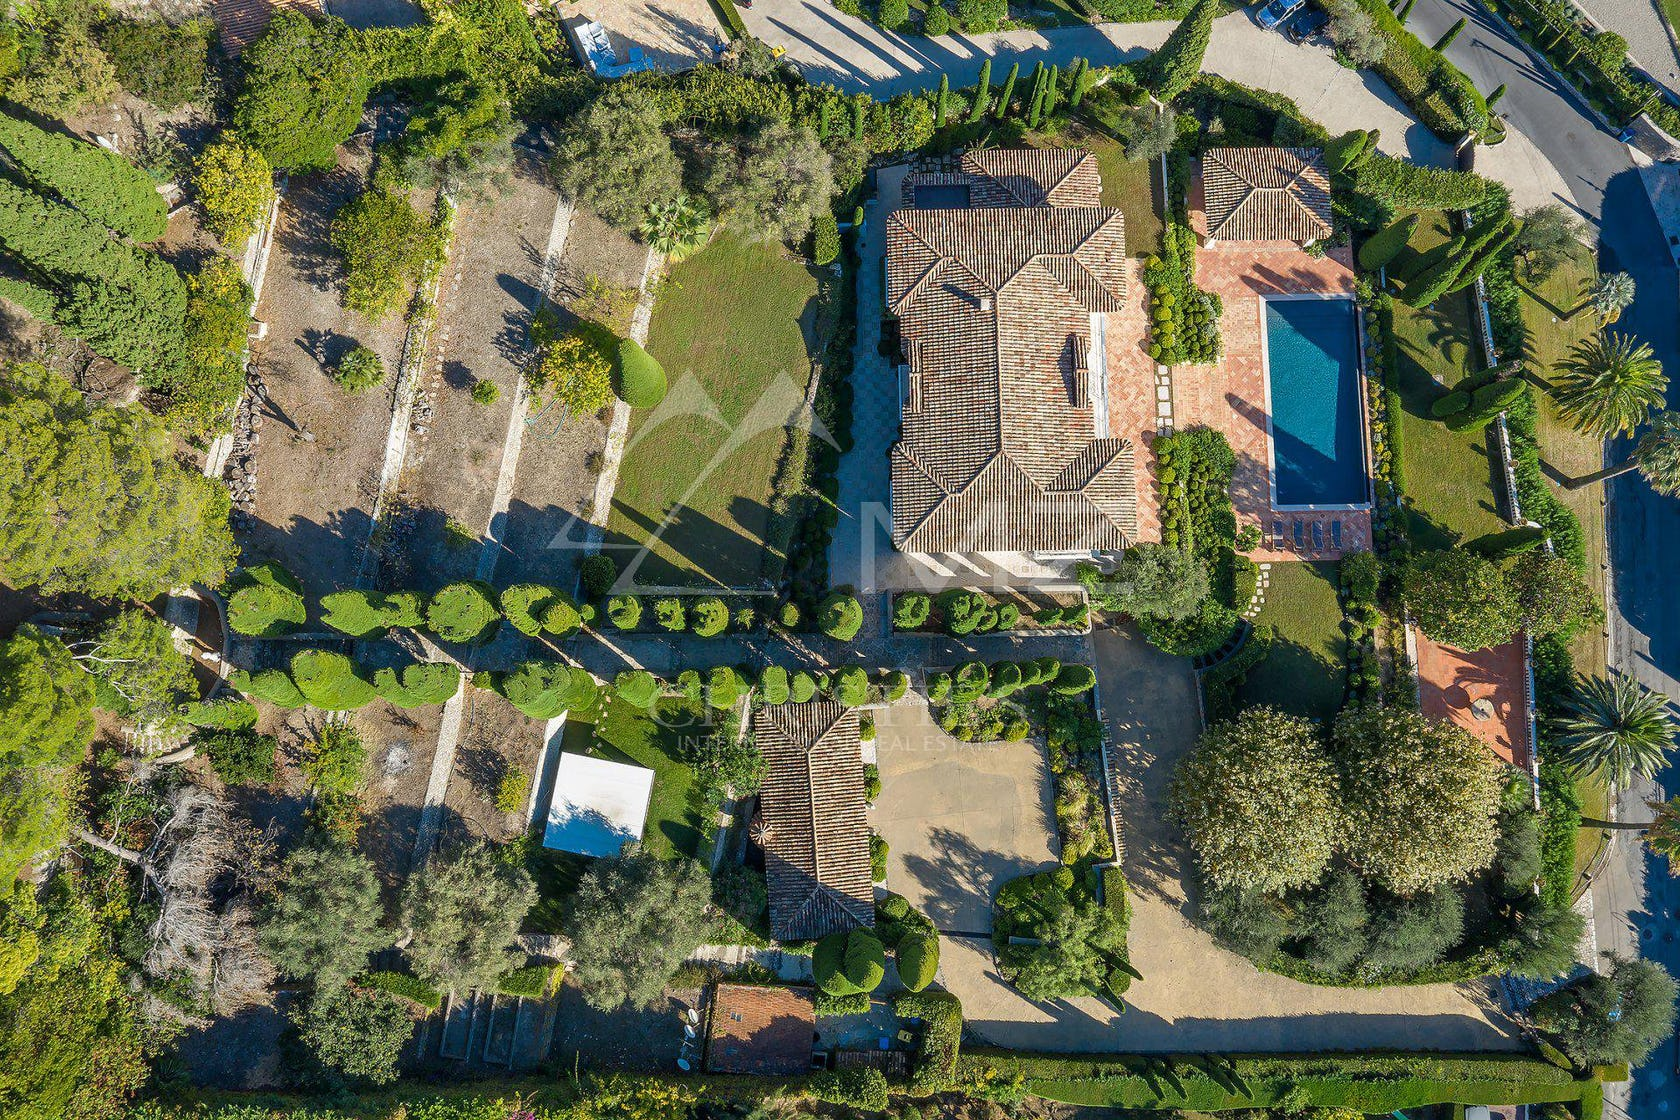 scenery nature outdoors landscape aerial view neighborhood urban building